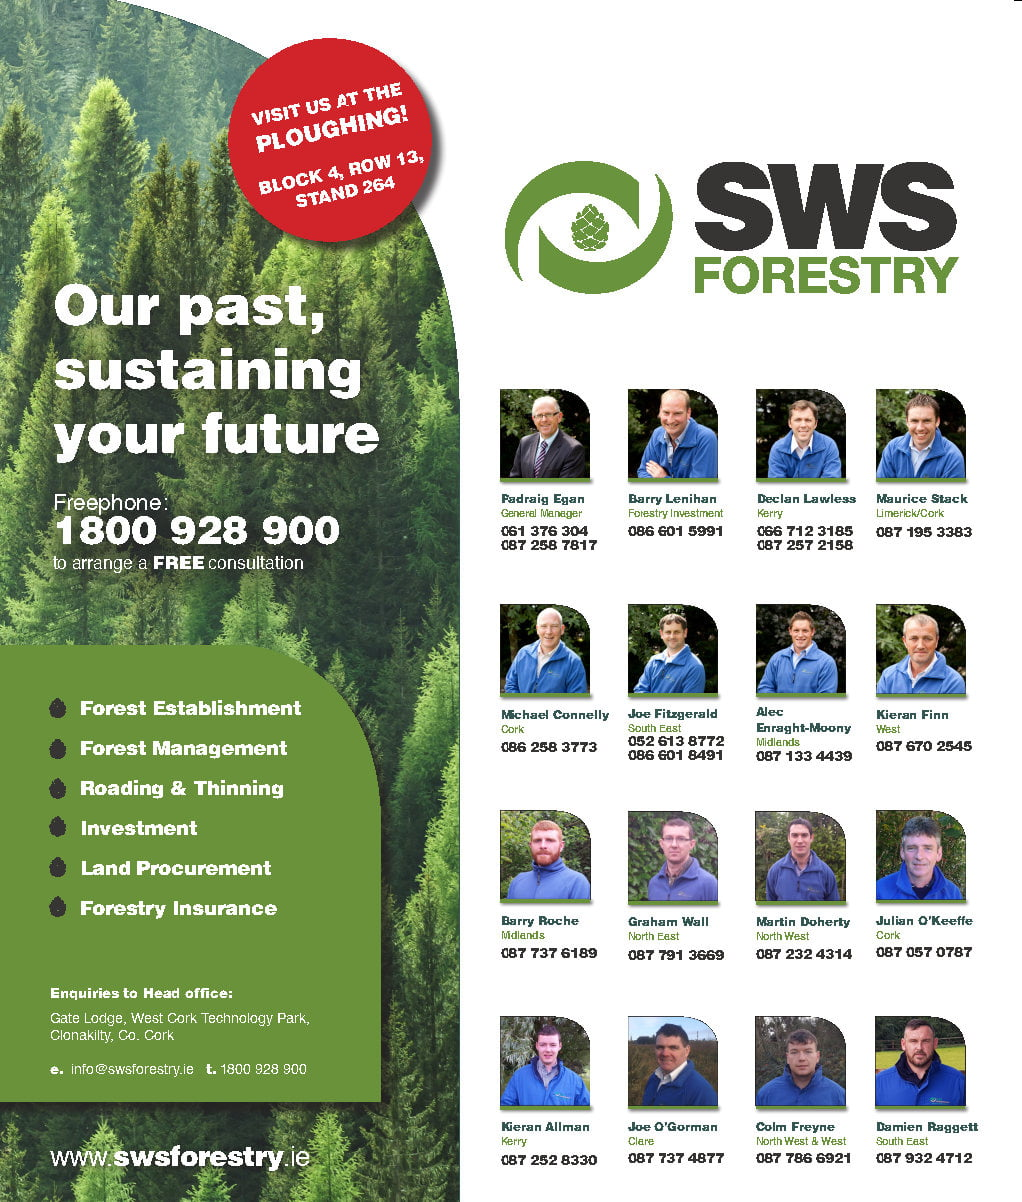 SWS Full Page Advert Ploughing